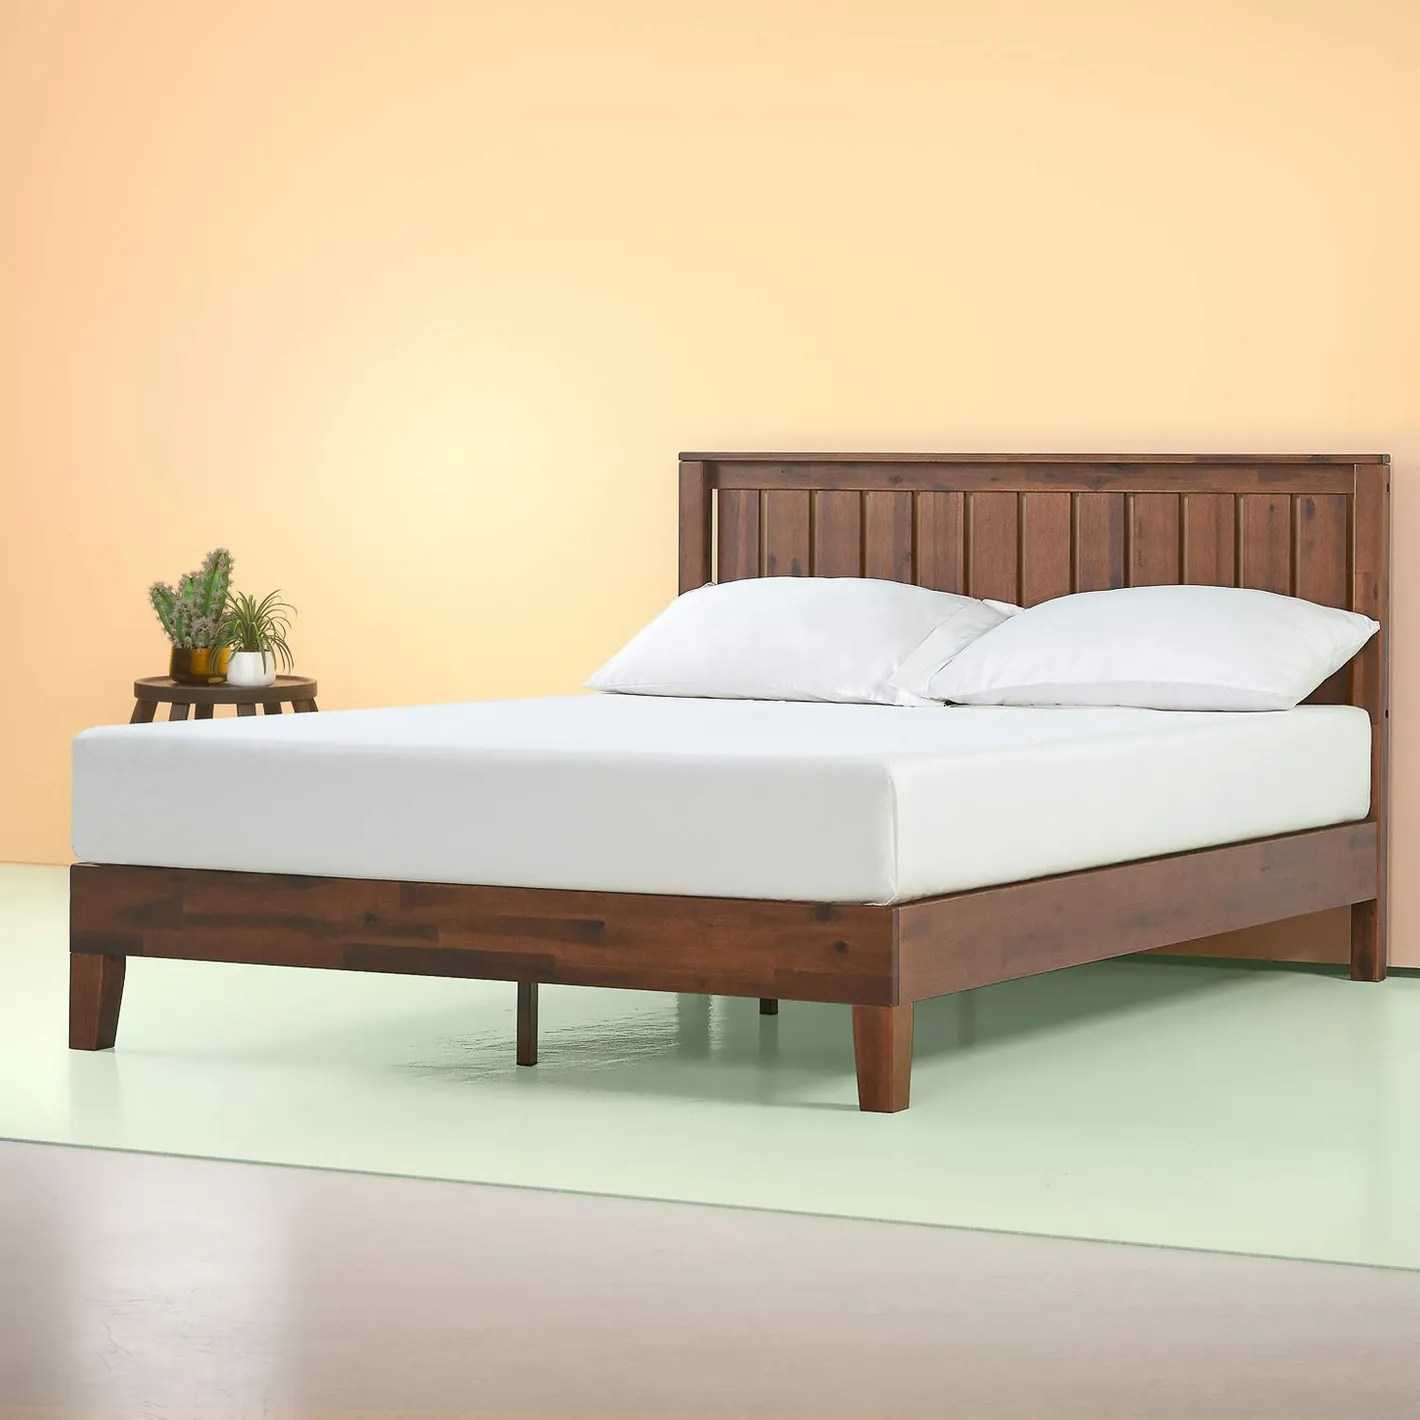 Cheap Wooden Bed Frames 15 Best Platform Beds Under 500 2019